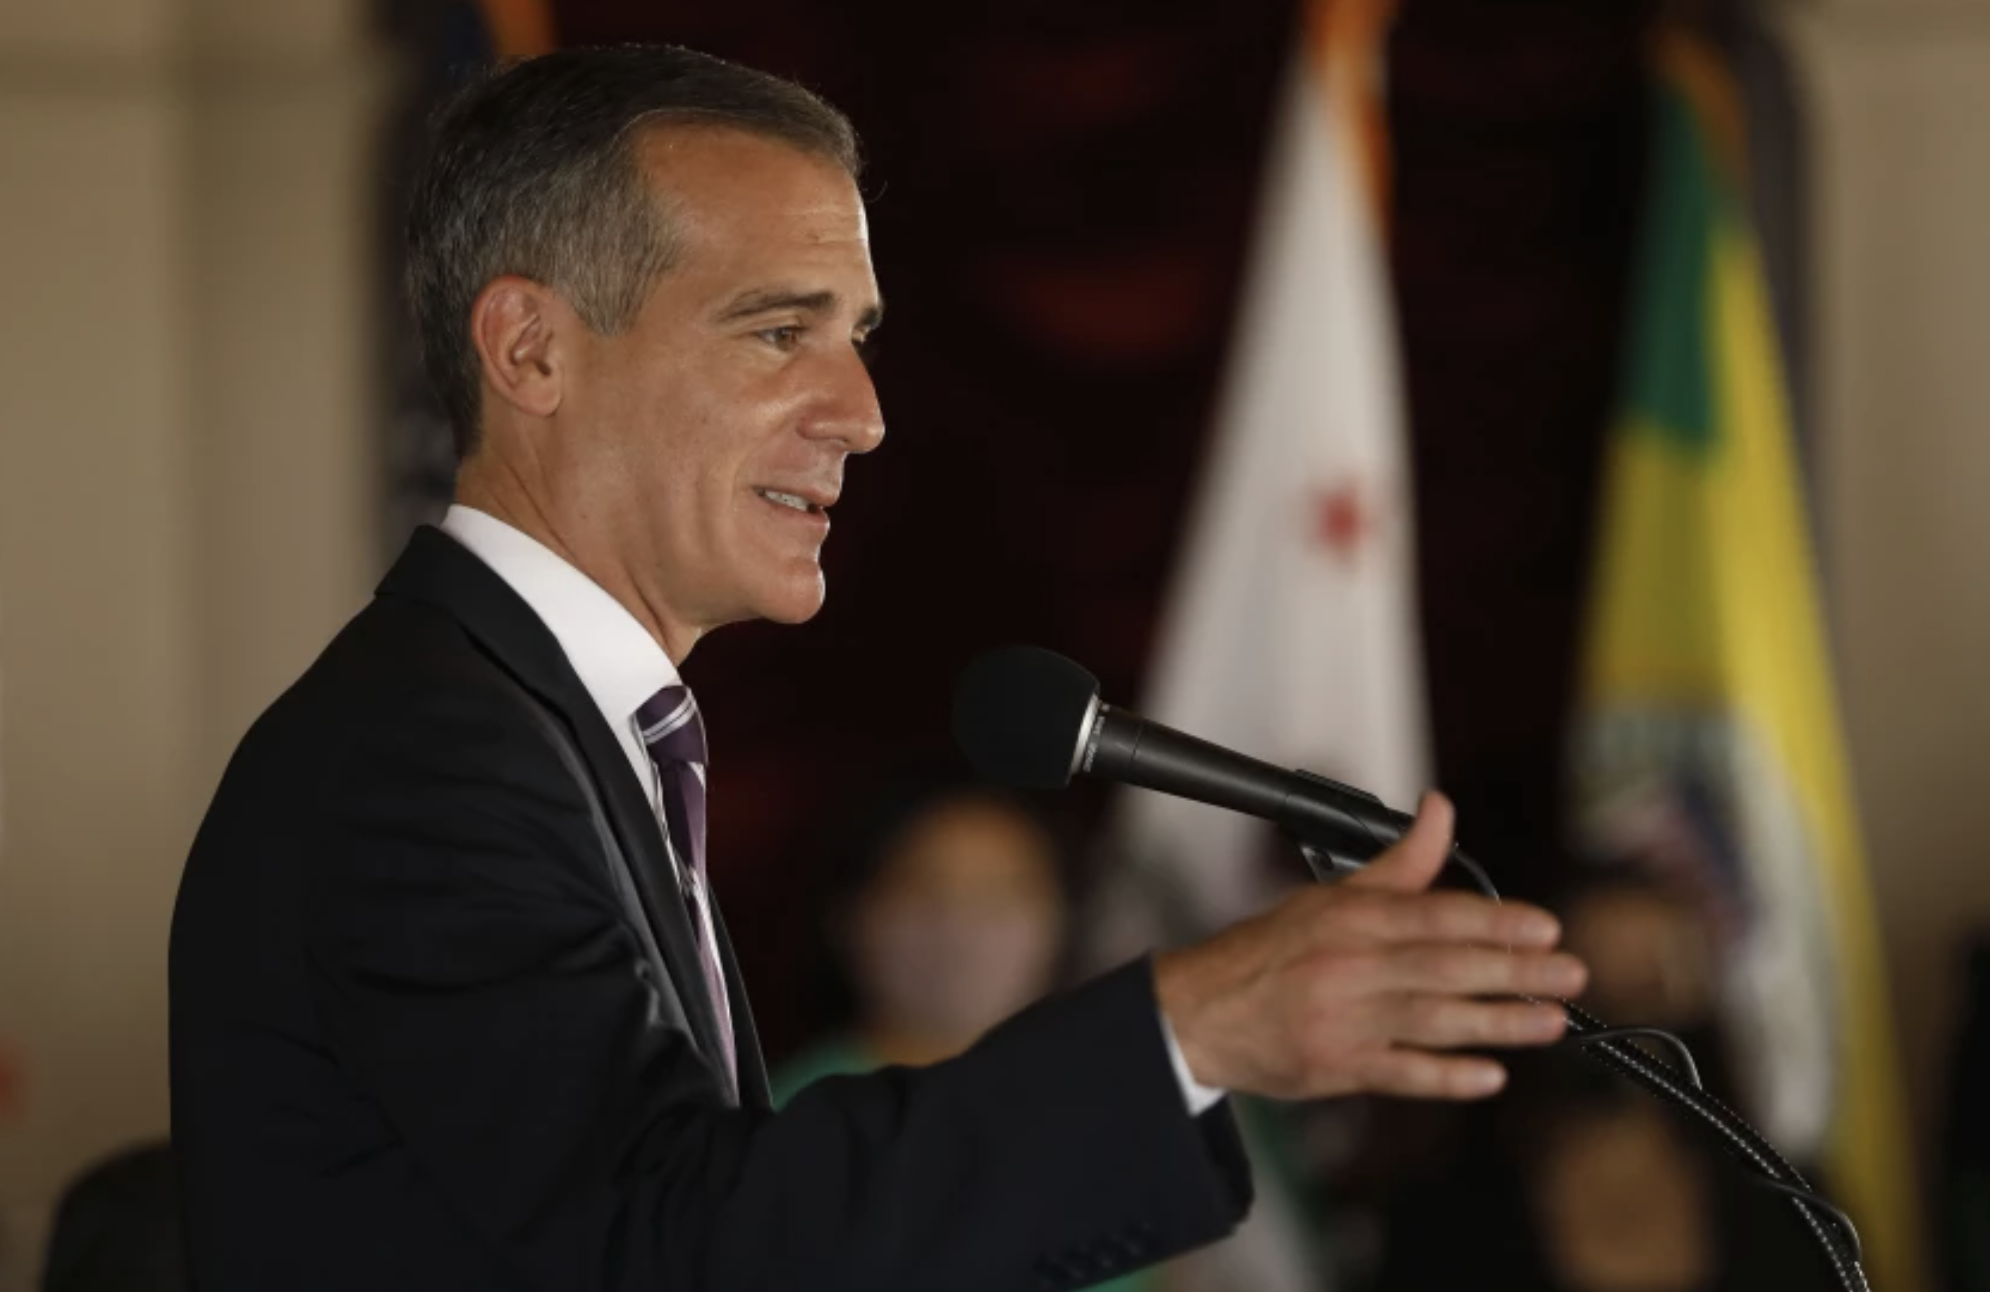 Mayor Eric Garcetti is seen at a City Hall news conference. (Al Seib / Los Angeles Times)